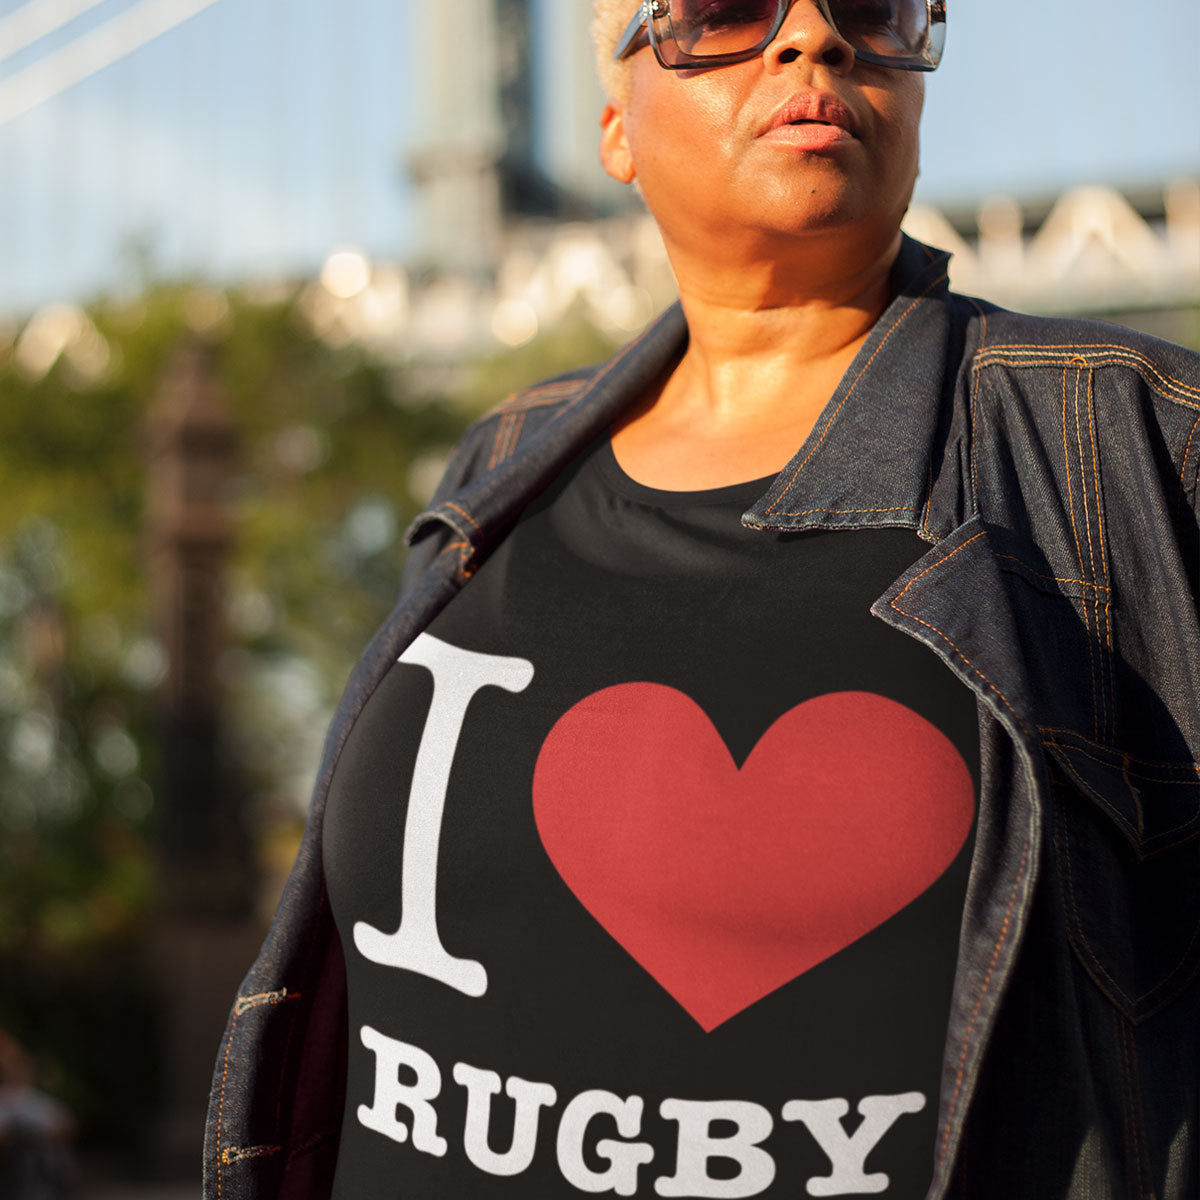 Women's I Love Rugby Tee - First XV rugbystuff.com